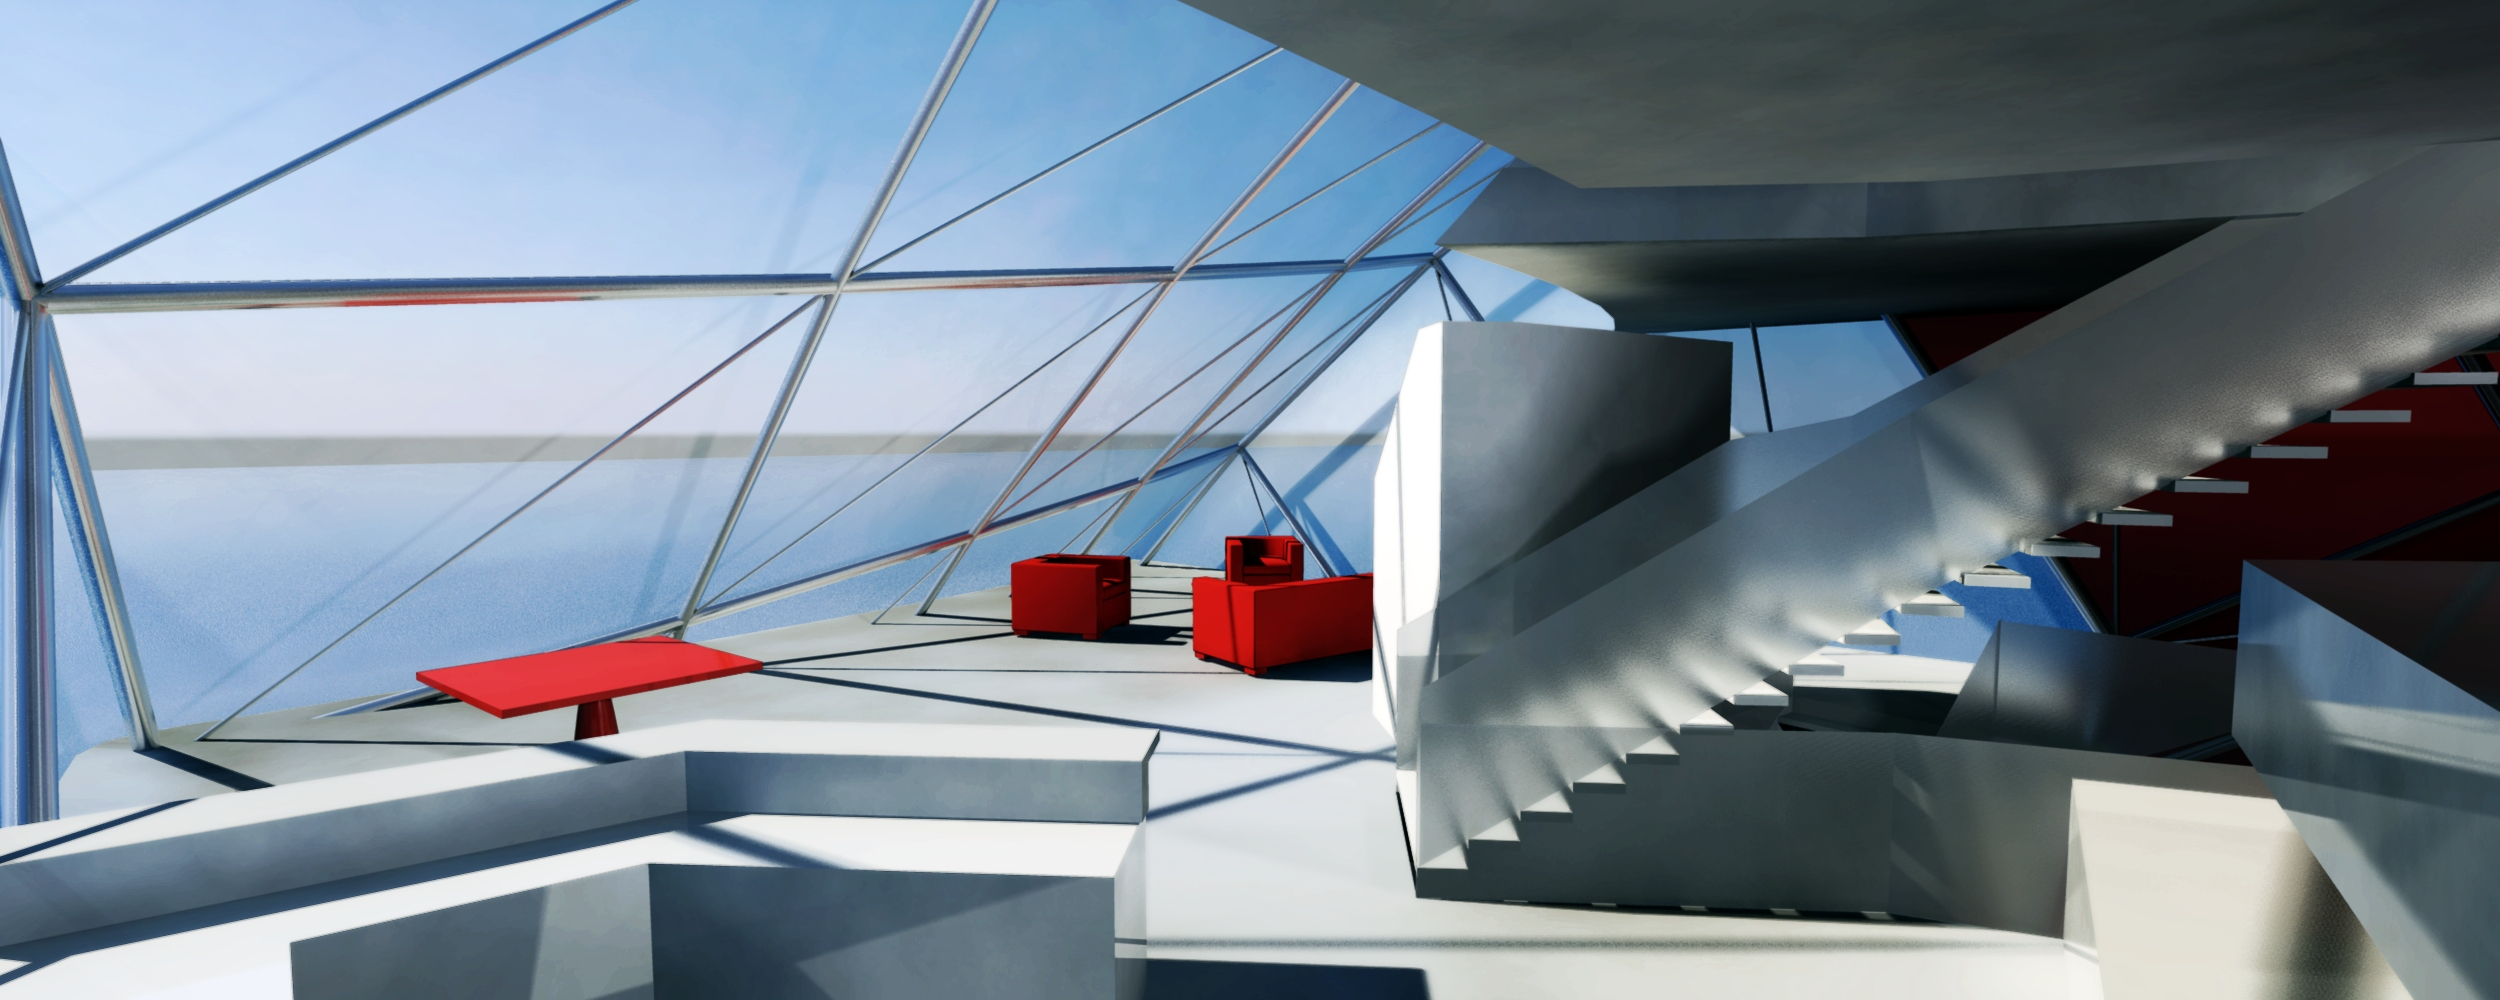 new - living space_result_TylerSel_by_Dali.jpg